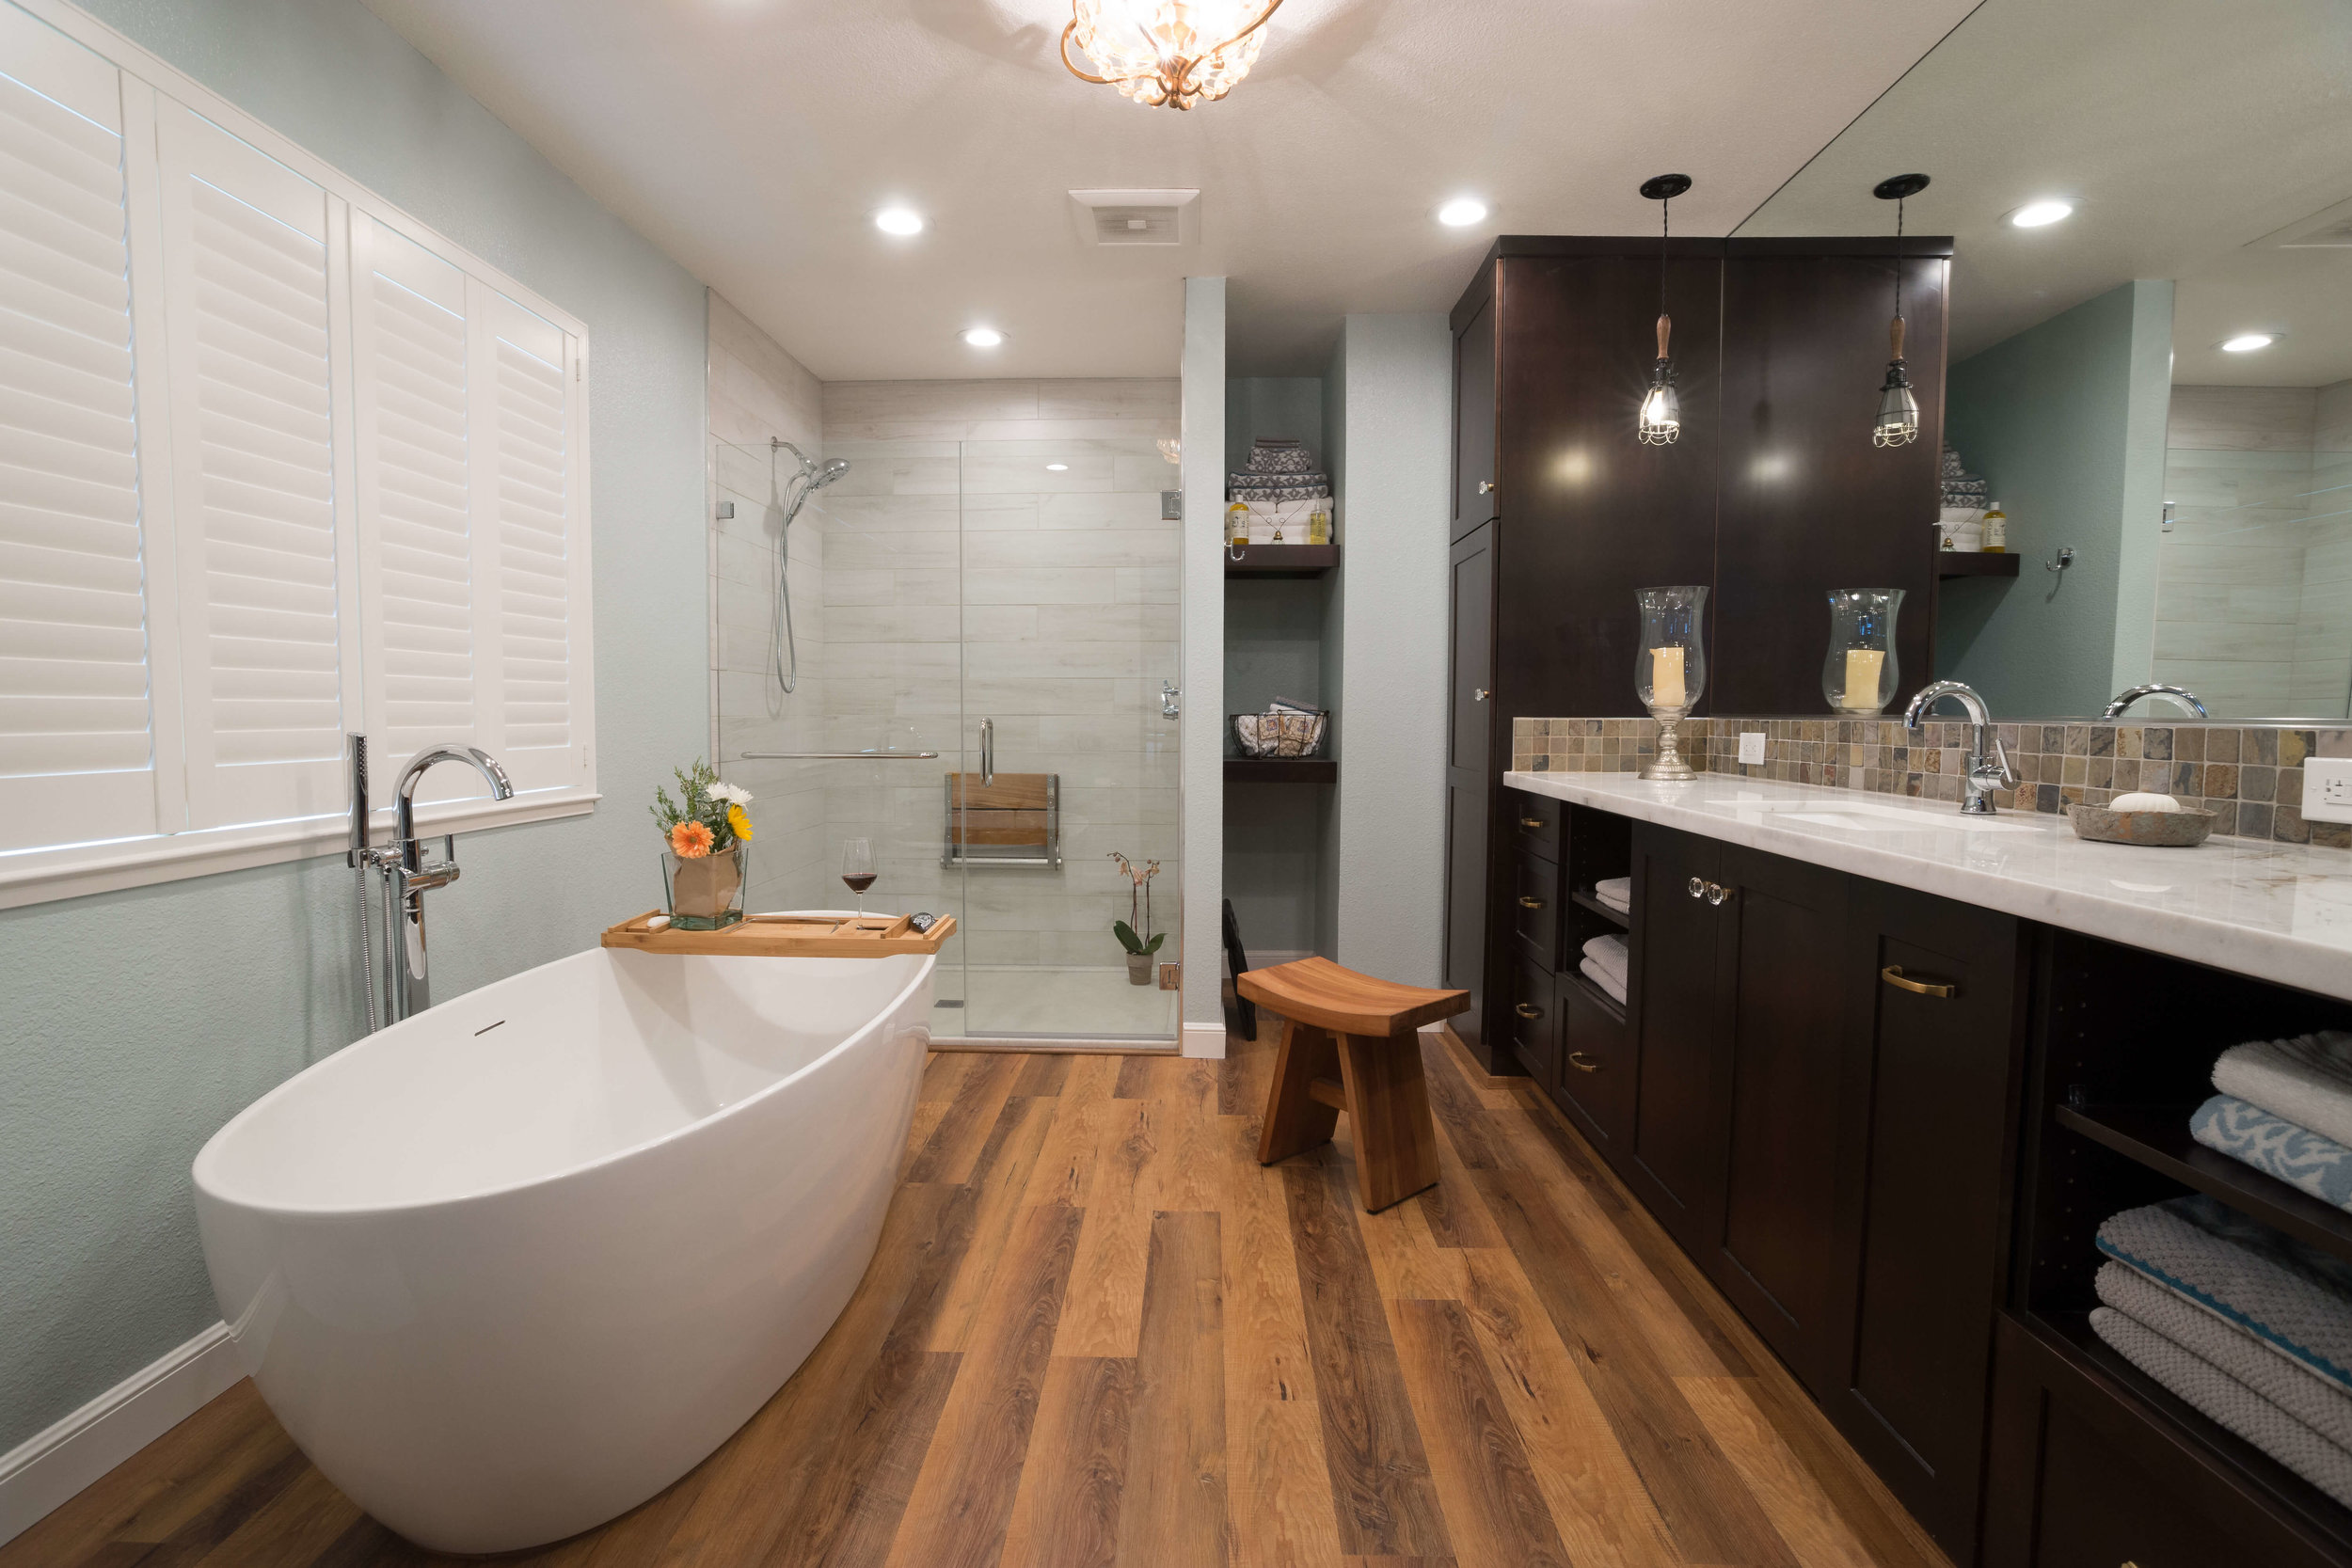 New master bathroom layout with luxury vinyl tile flooring, spacious tub and elegant shower